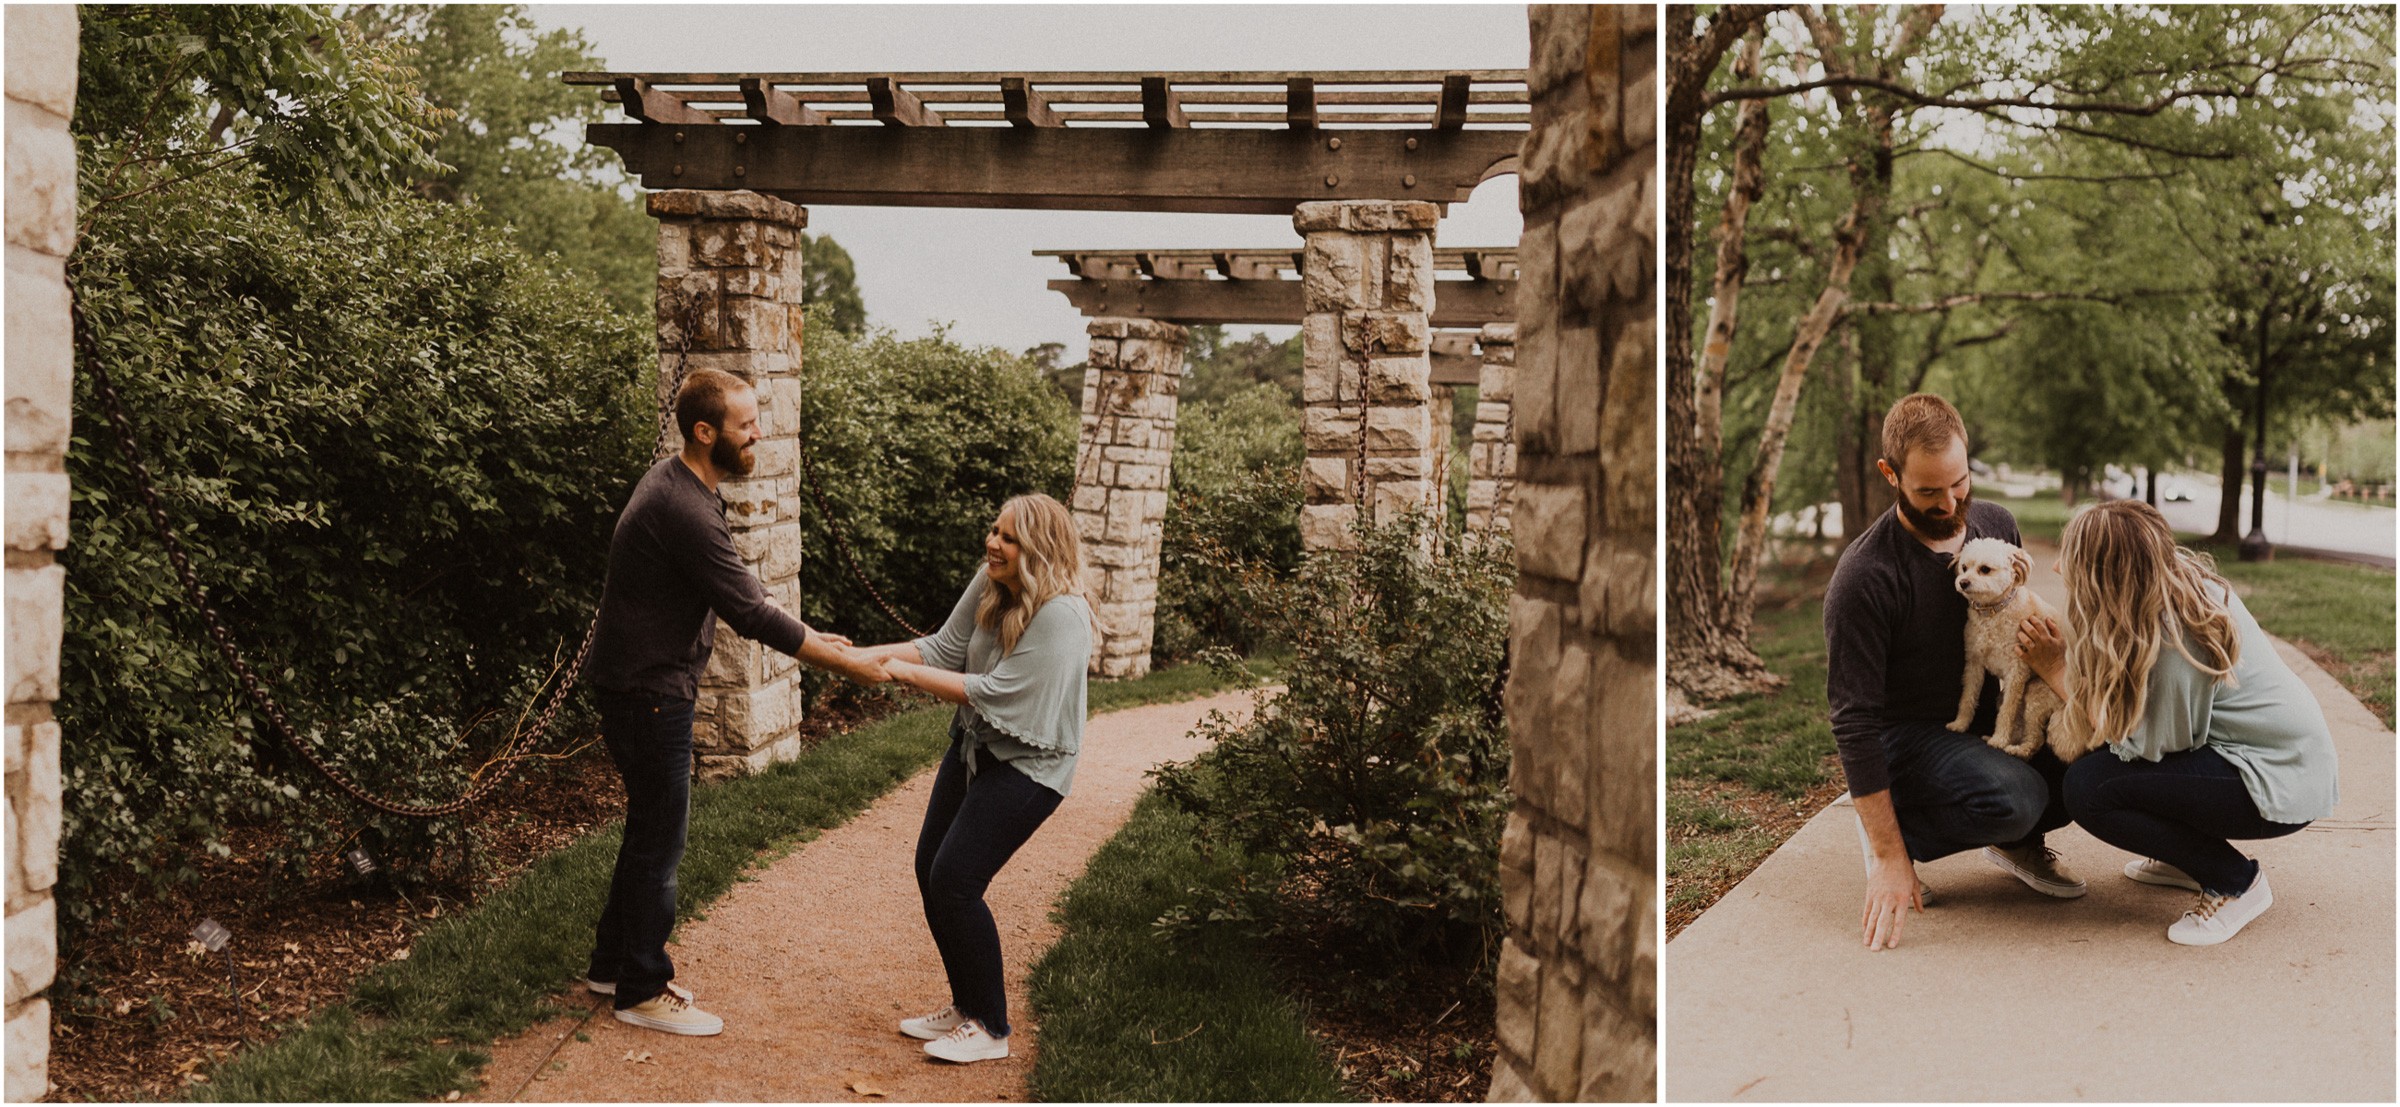 alyssa barletter photography kansas city liberty memorial loose park engagement session photographer-6.jpg